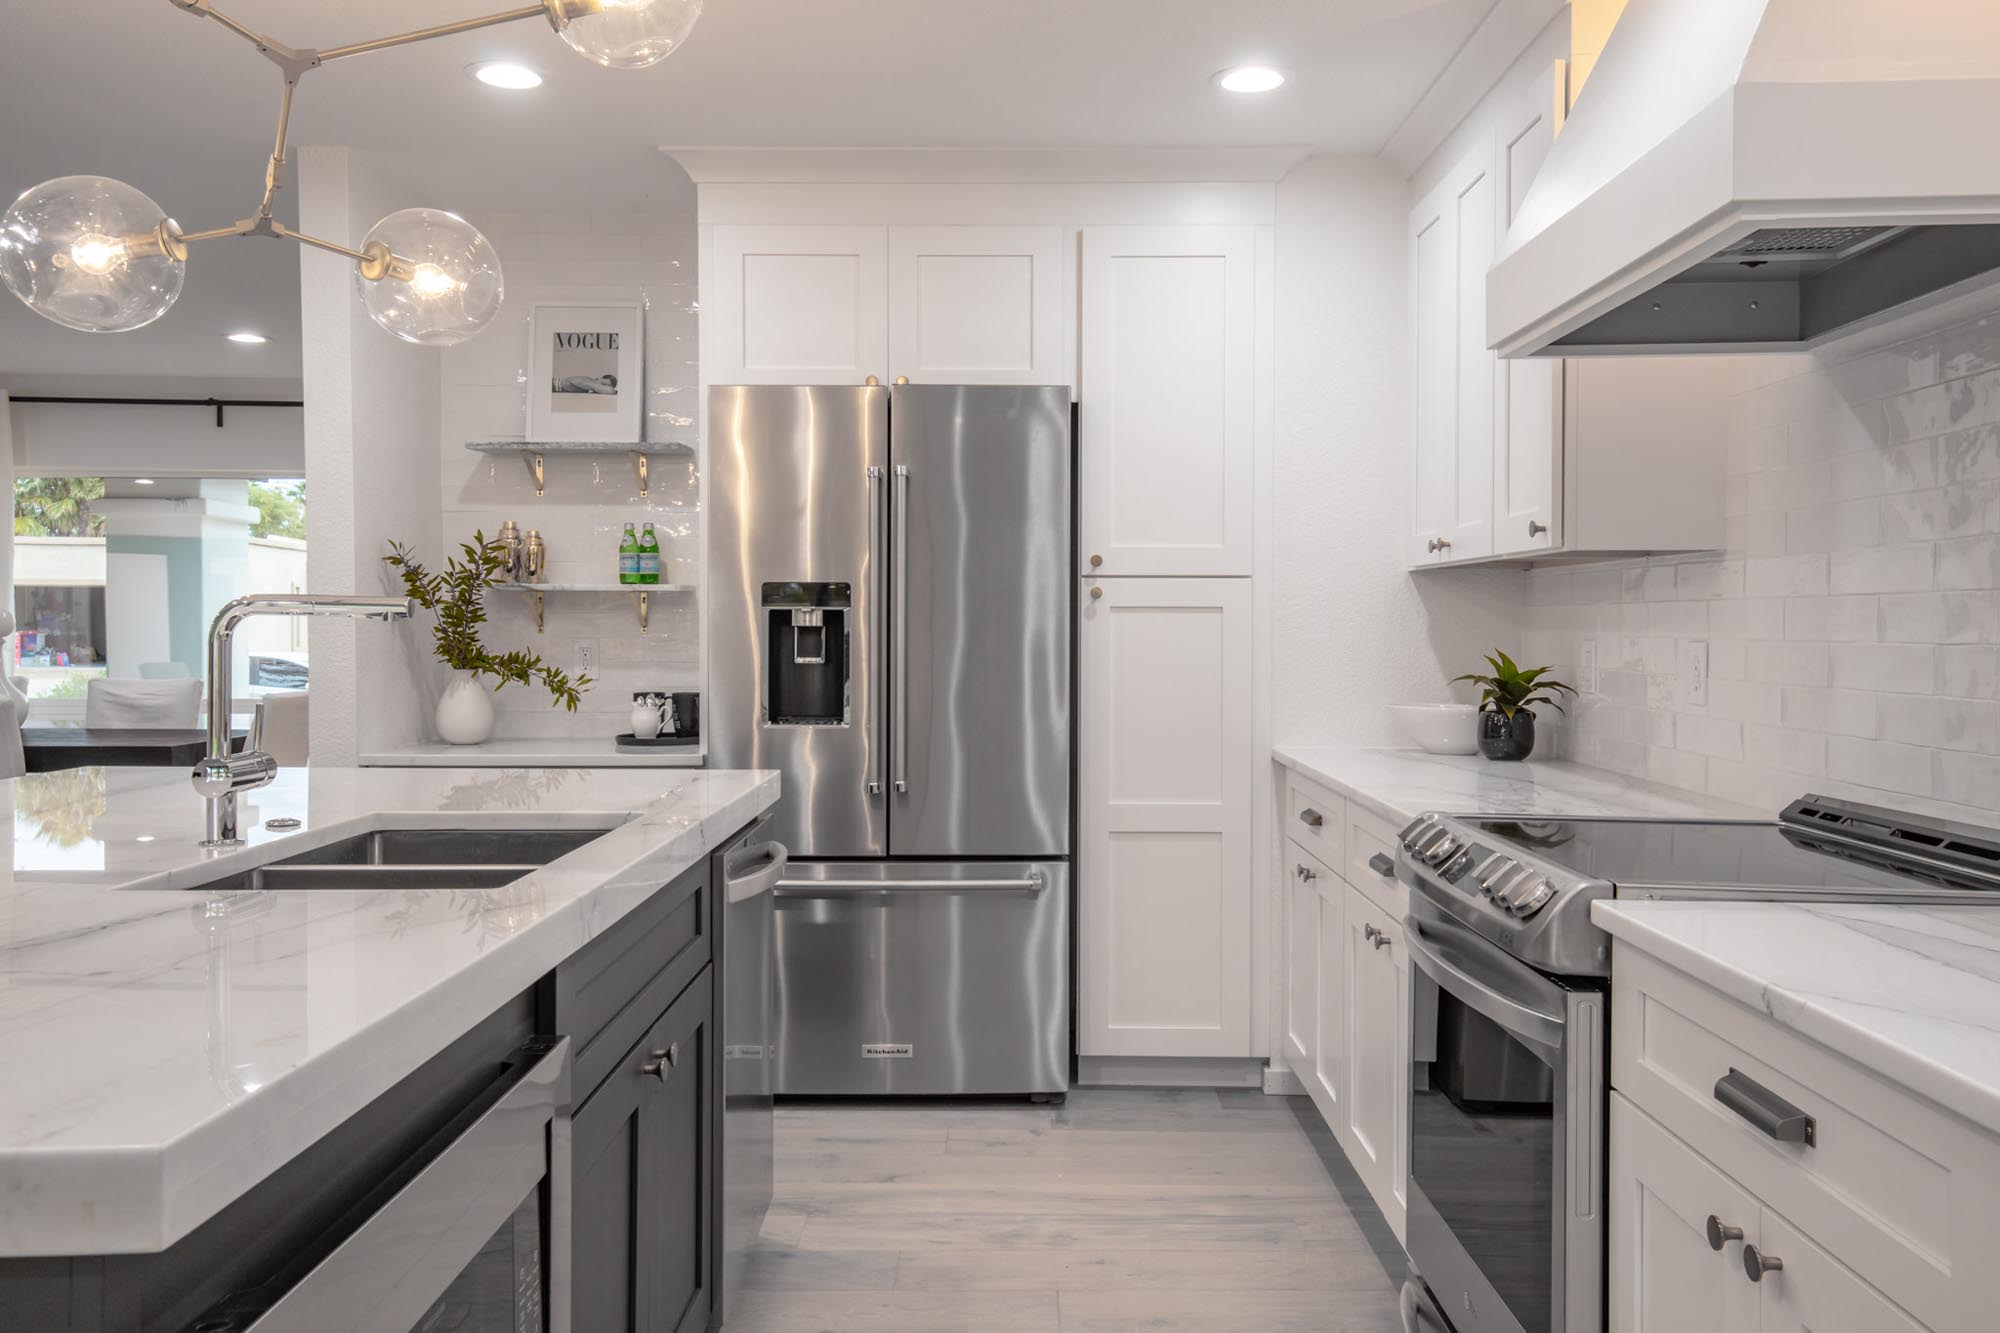 Kitchen with appliances and white cabinets